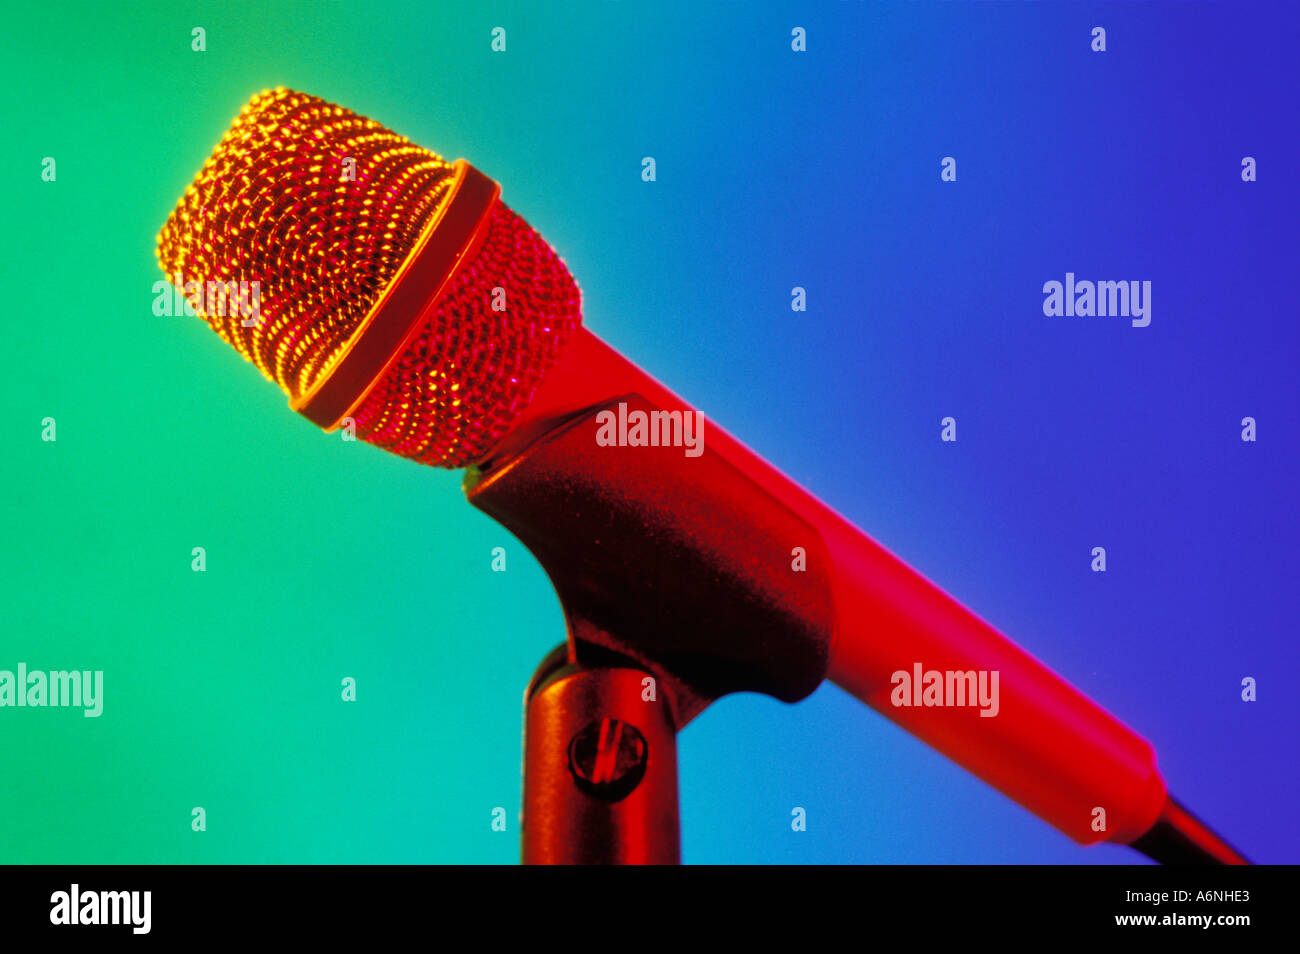 Stage microphone - Stock Image